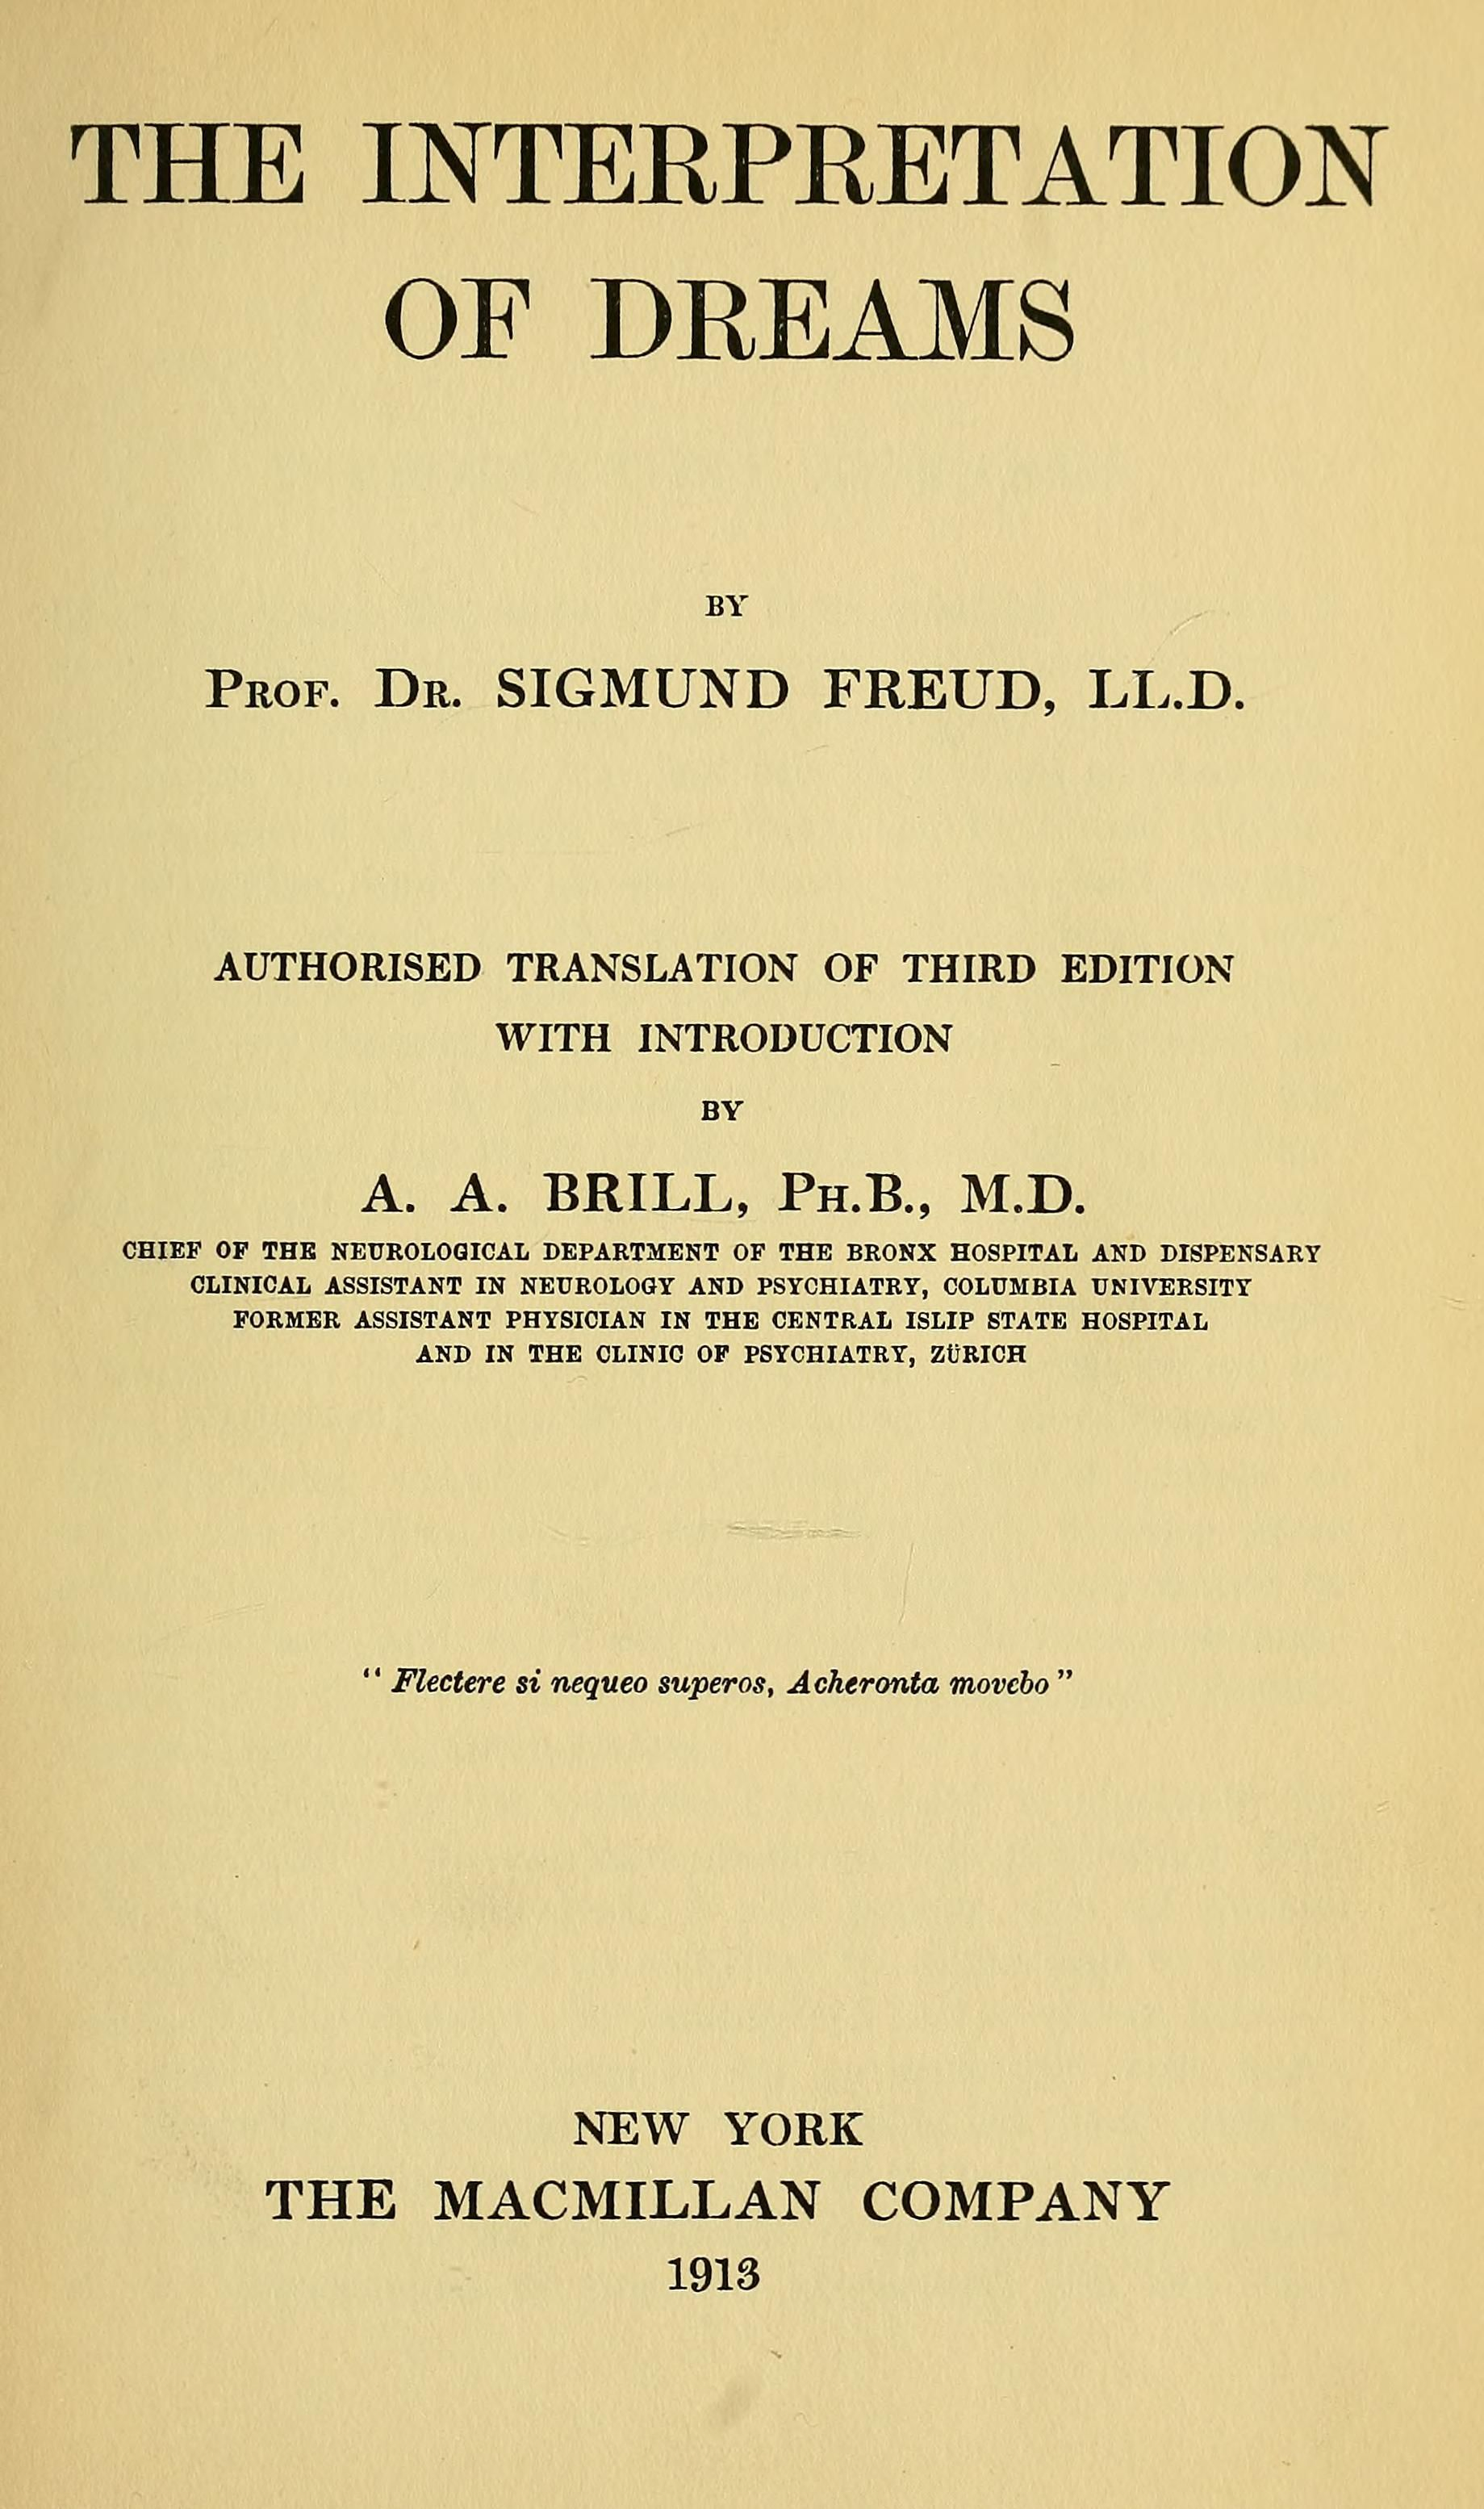 Sigmund Freud Libros The Interpretation Of Dreams By Sigmund Freud Psychology Latin